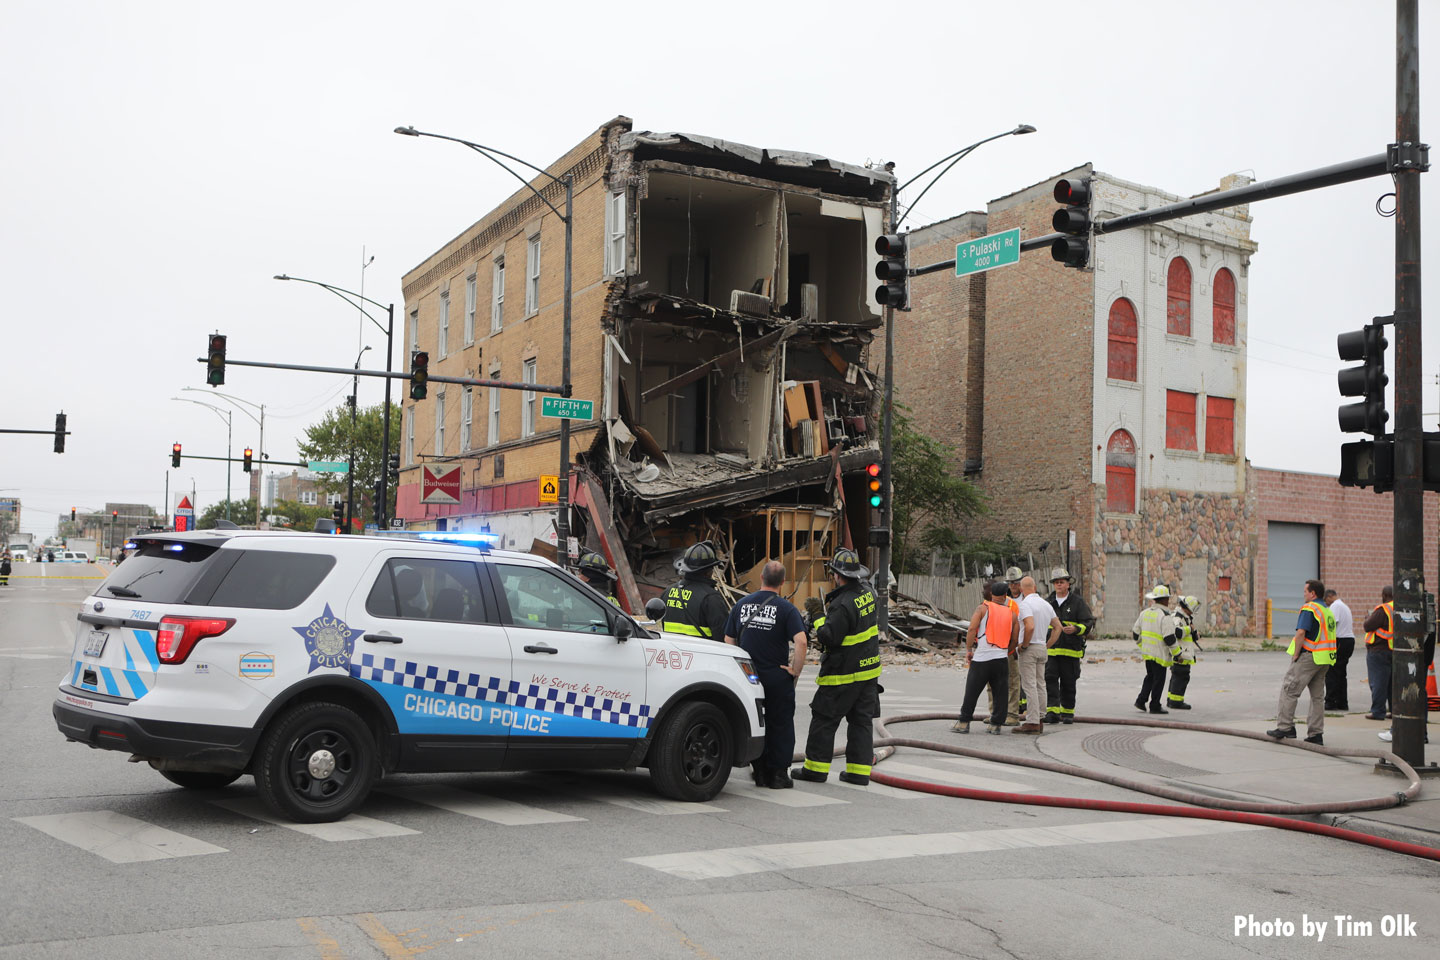 A Chicago police car and Chicago firefighters on scene.